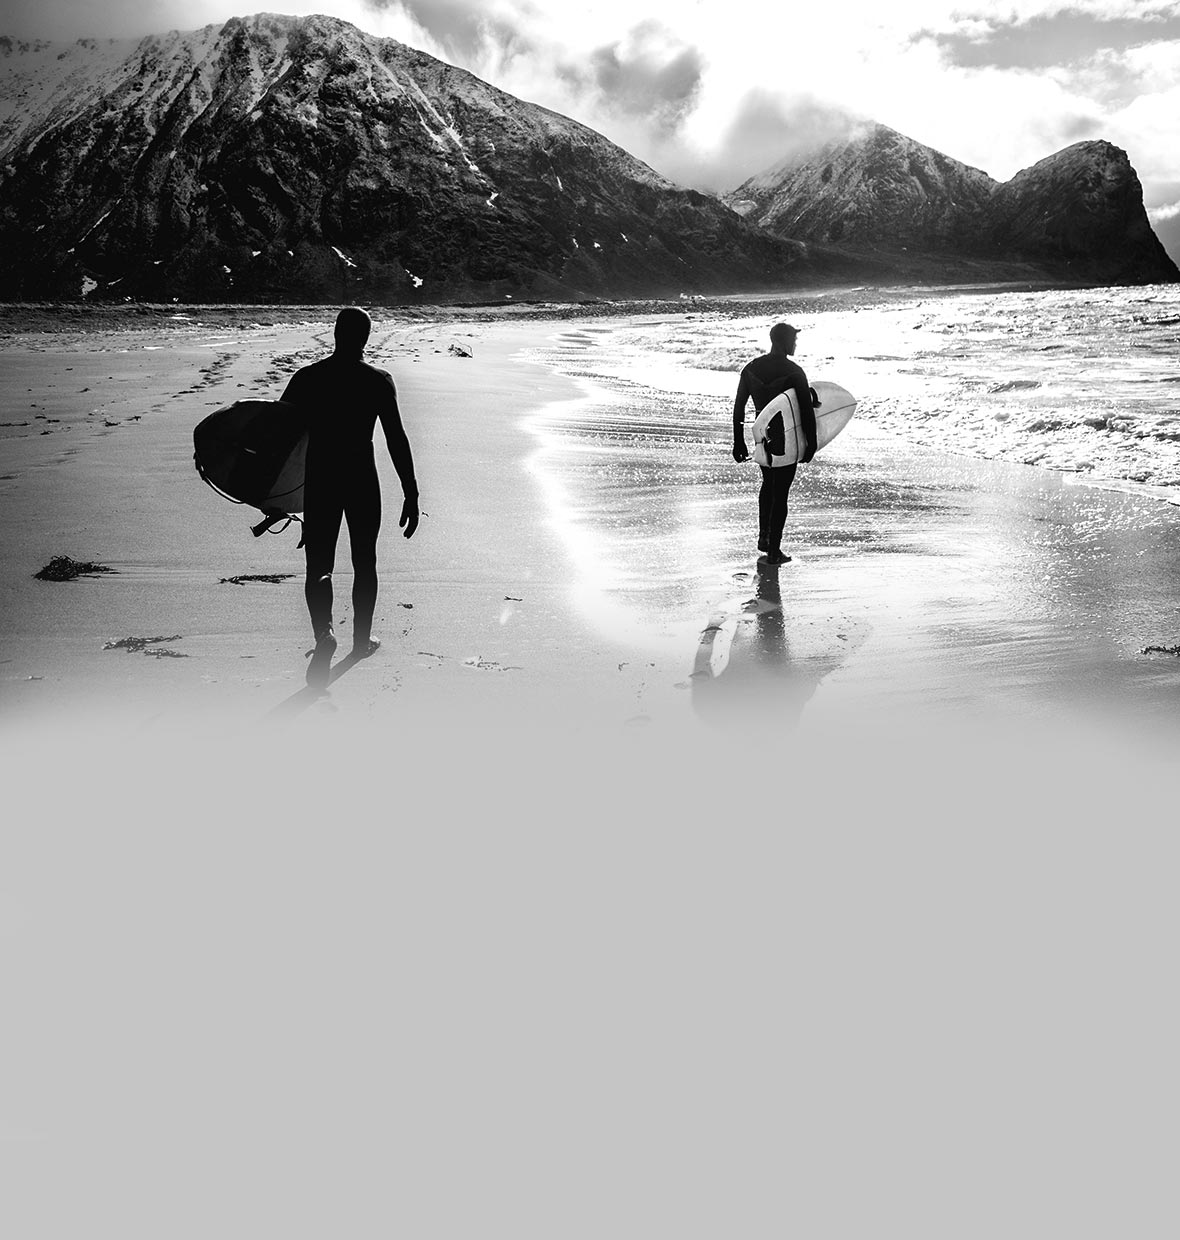 Surfers on beach